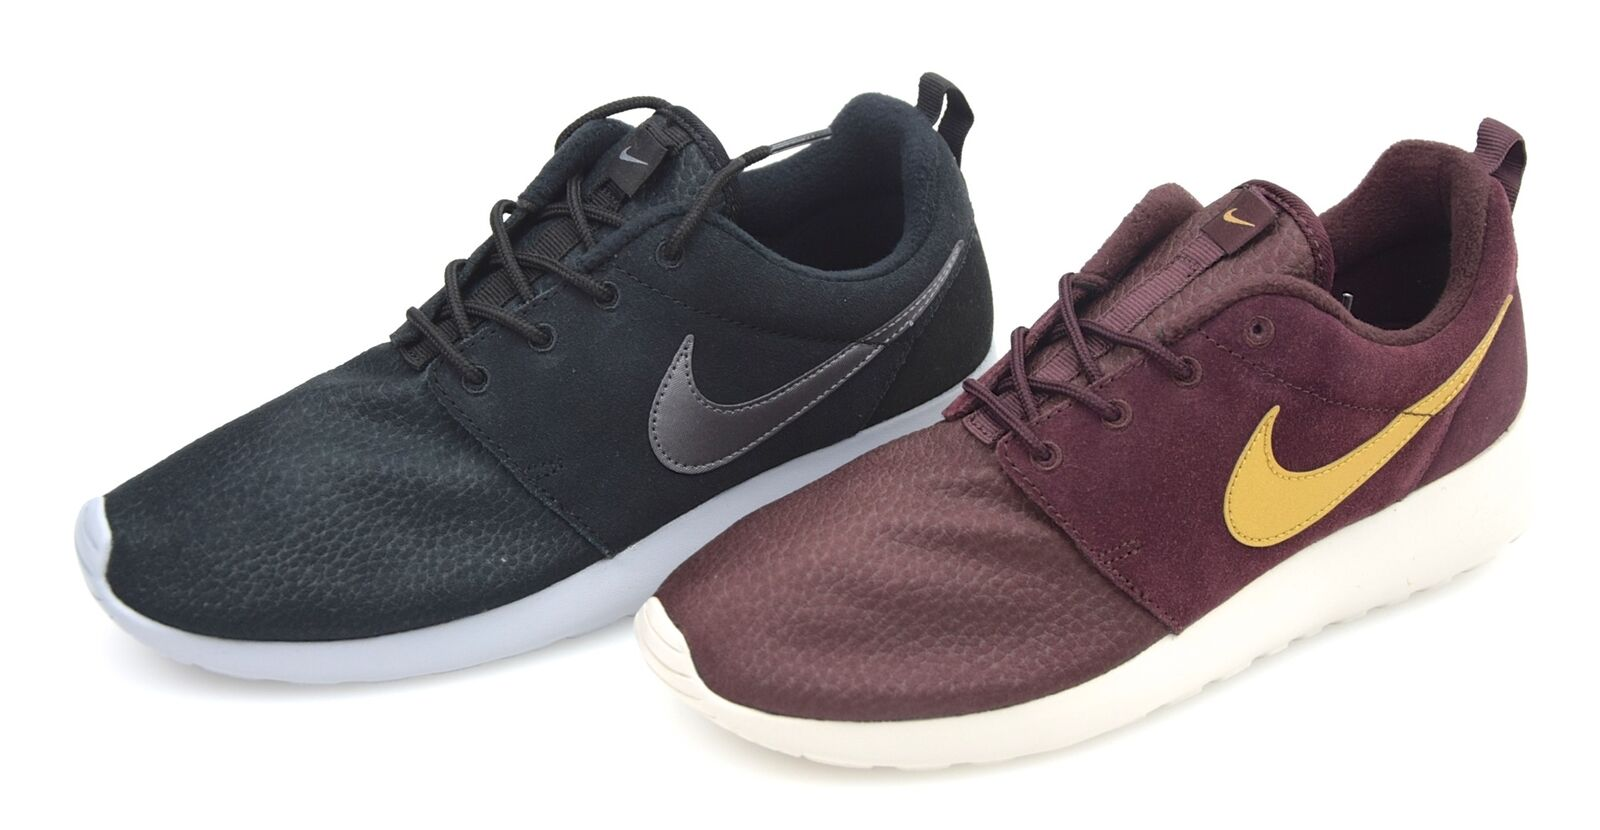 NIKE Homme SNEAKER Chaussures SPORTS CASUAL FREE TIME CODE ROSHE ONE SUEDE 685280